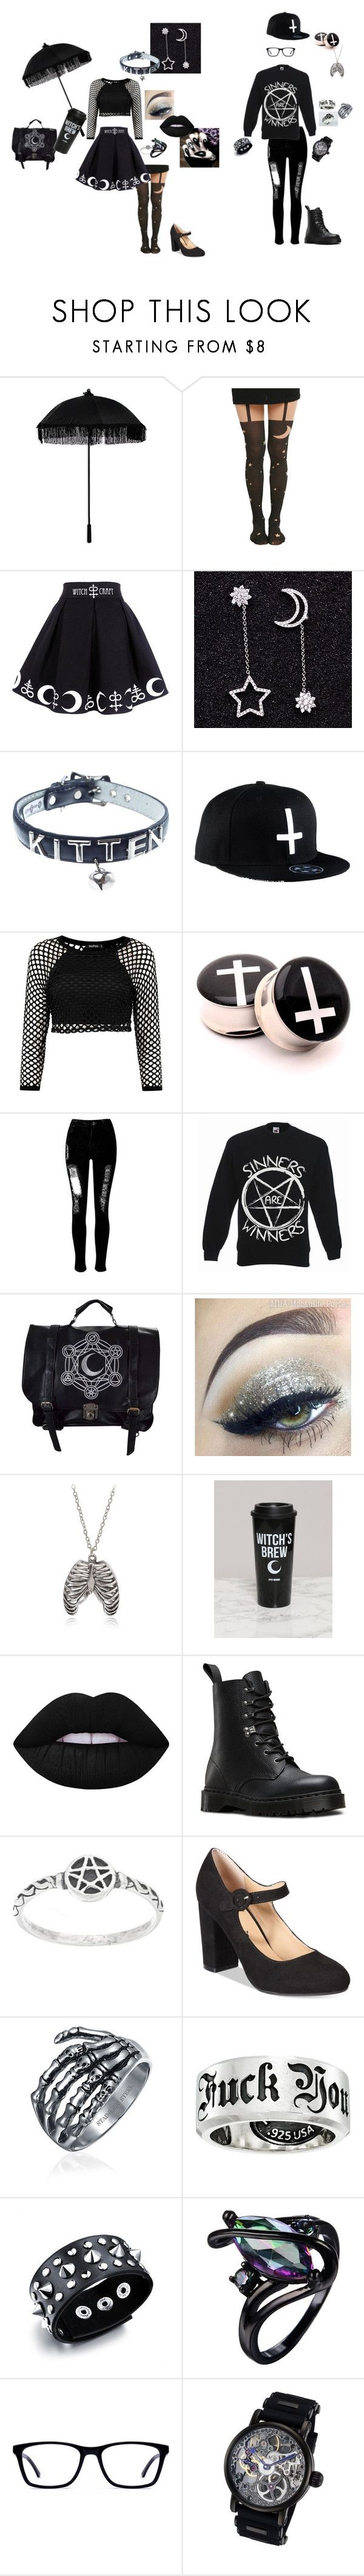 """""""#44{DDLG - Little & Daddy}"""" by demonictrinity ❤ liked on Polyvore featuring Hot Topic, Maxine, NecroLeather, WithChic, INDIE HAIR, Lime Crime, Dr. Martens, American Rag Cie, Bling Jewelry and King Baby Studio"""